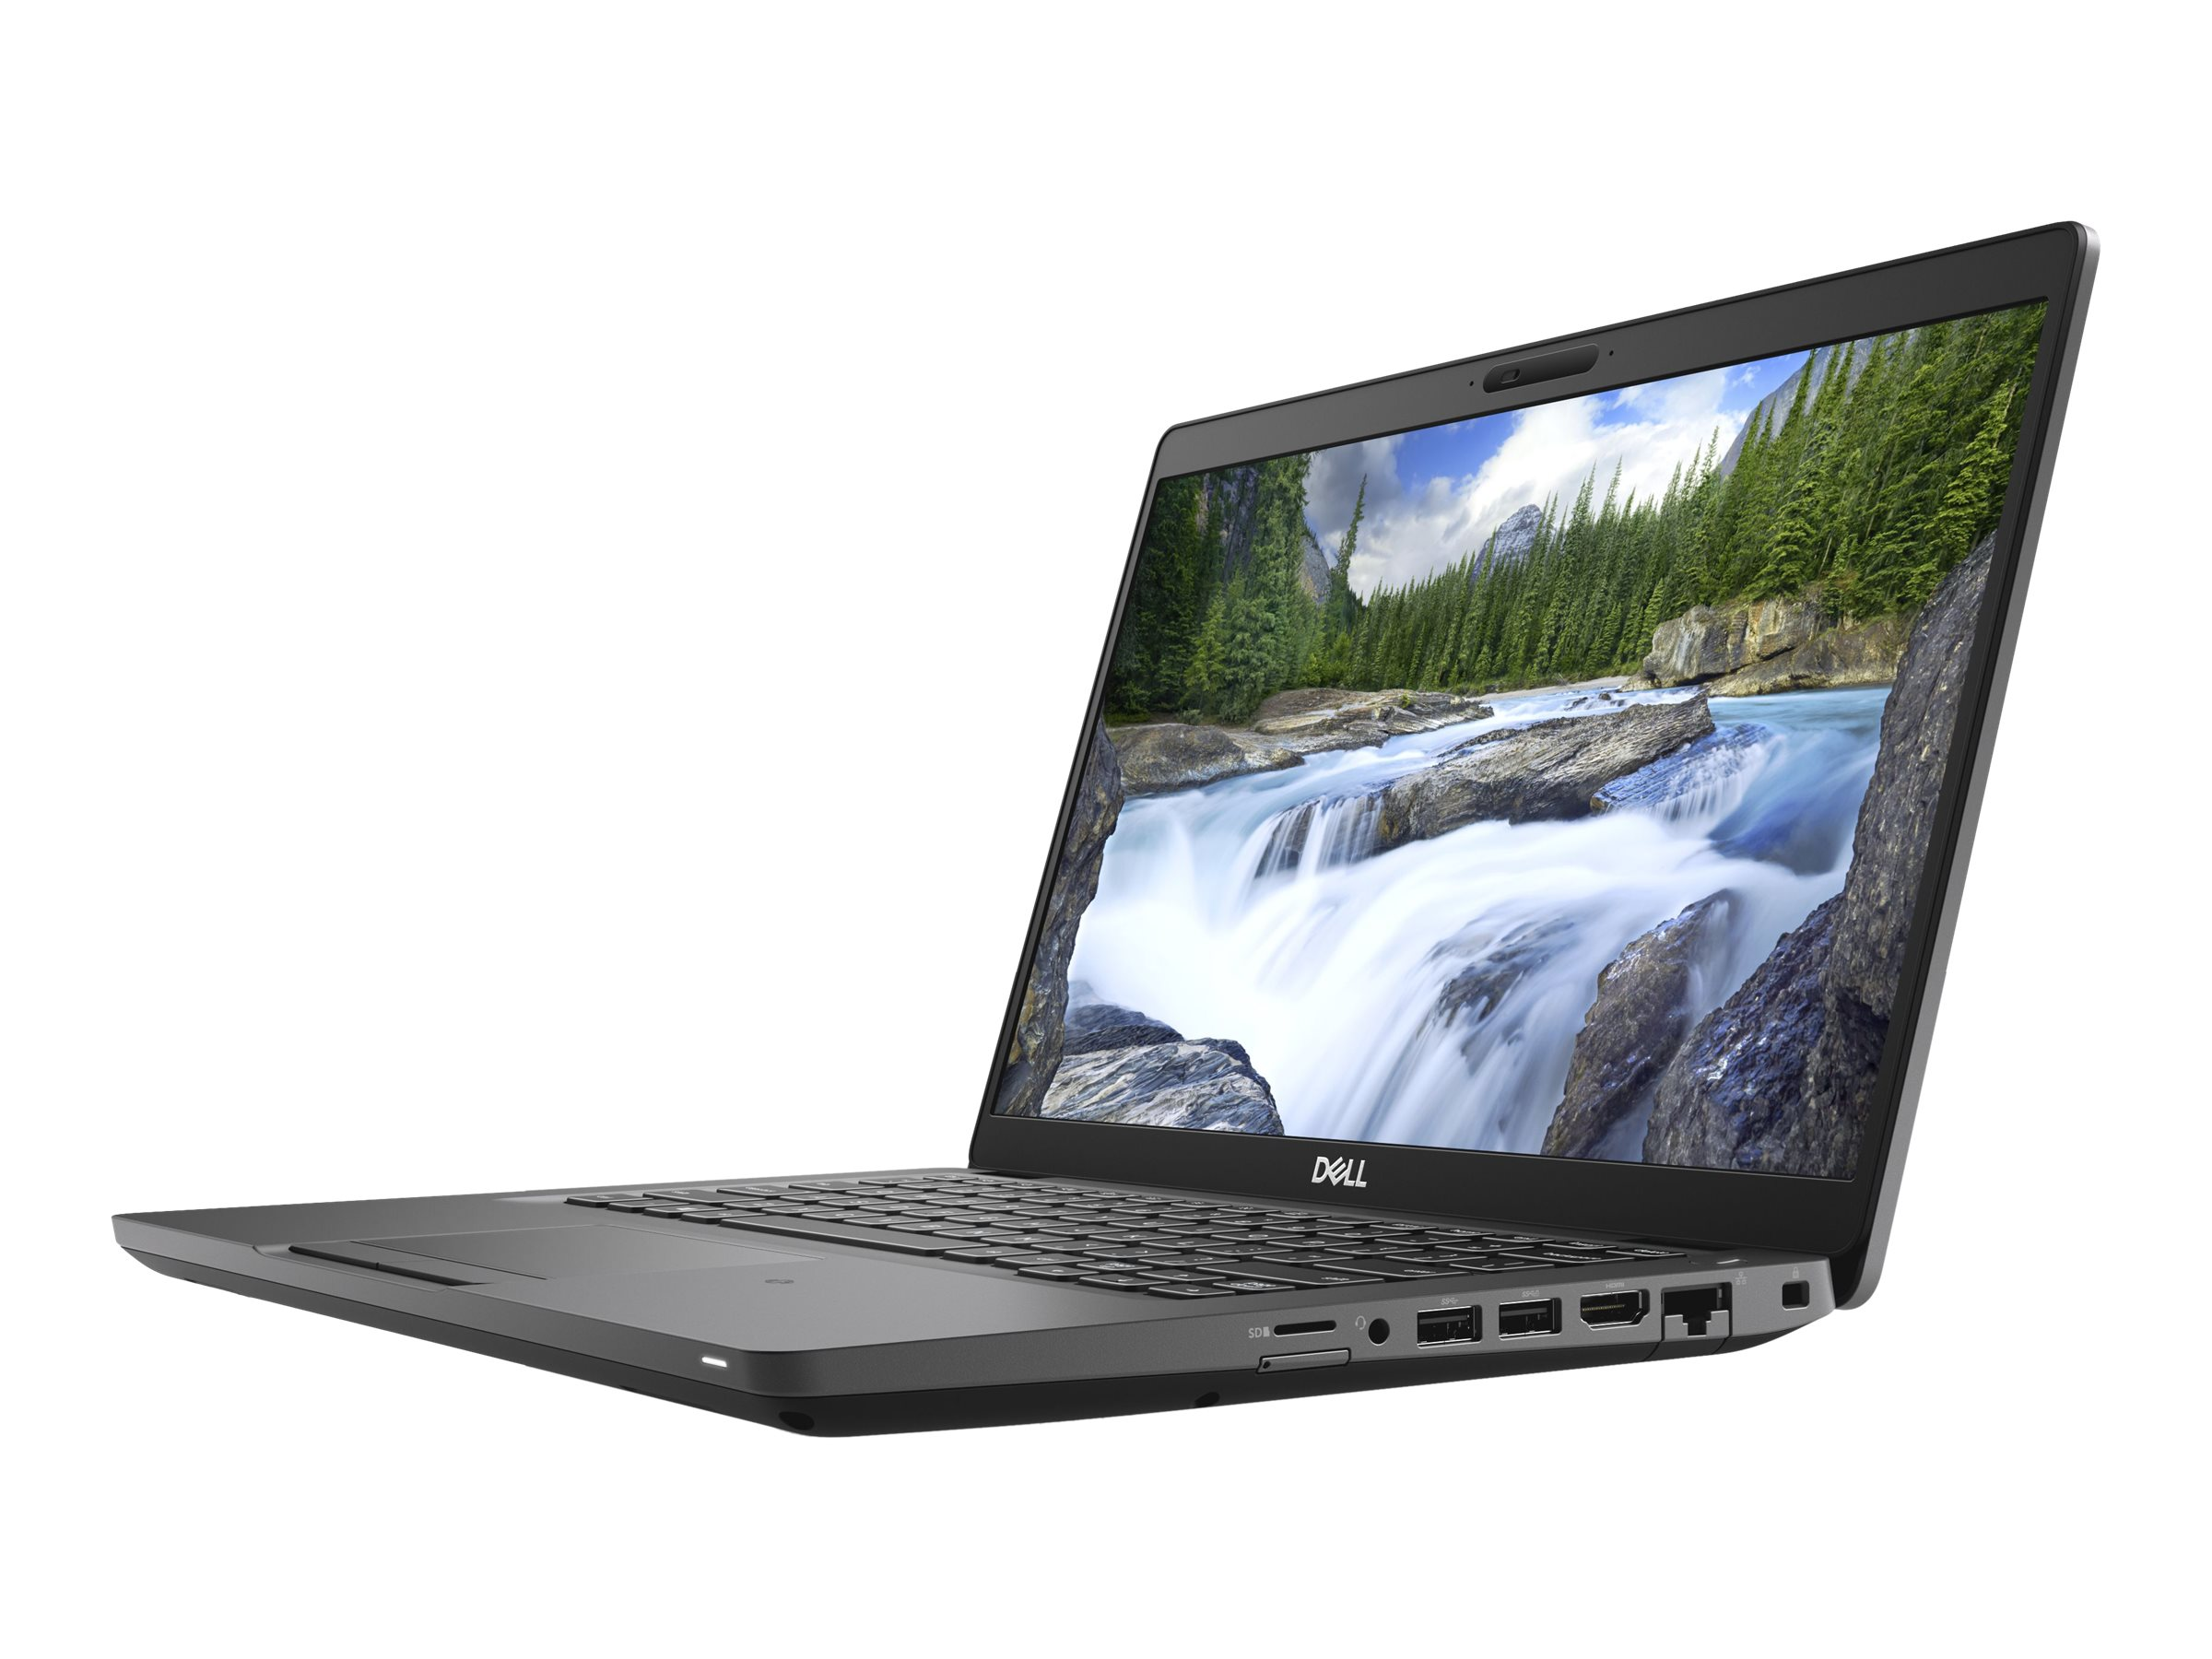 """Dell Latitude 5401 - 14"""" - Core i7 9850H - 8 GB RAM - 256 GB SSD - with 3-year ProSupport NBD"""